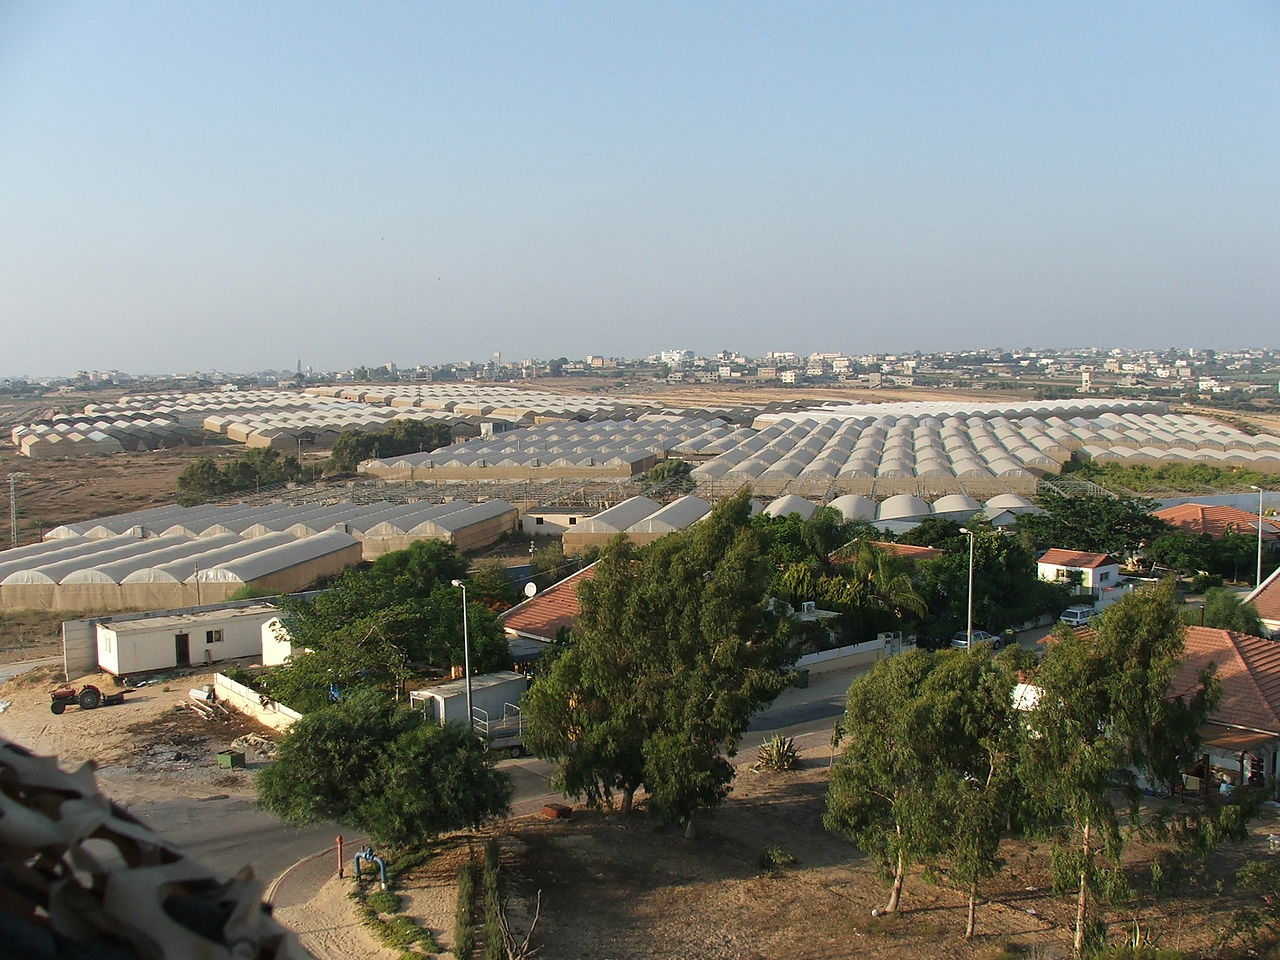 Gush Katif greenhouses left for Palestinians in the Gaza Strip.